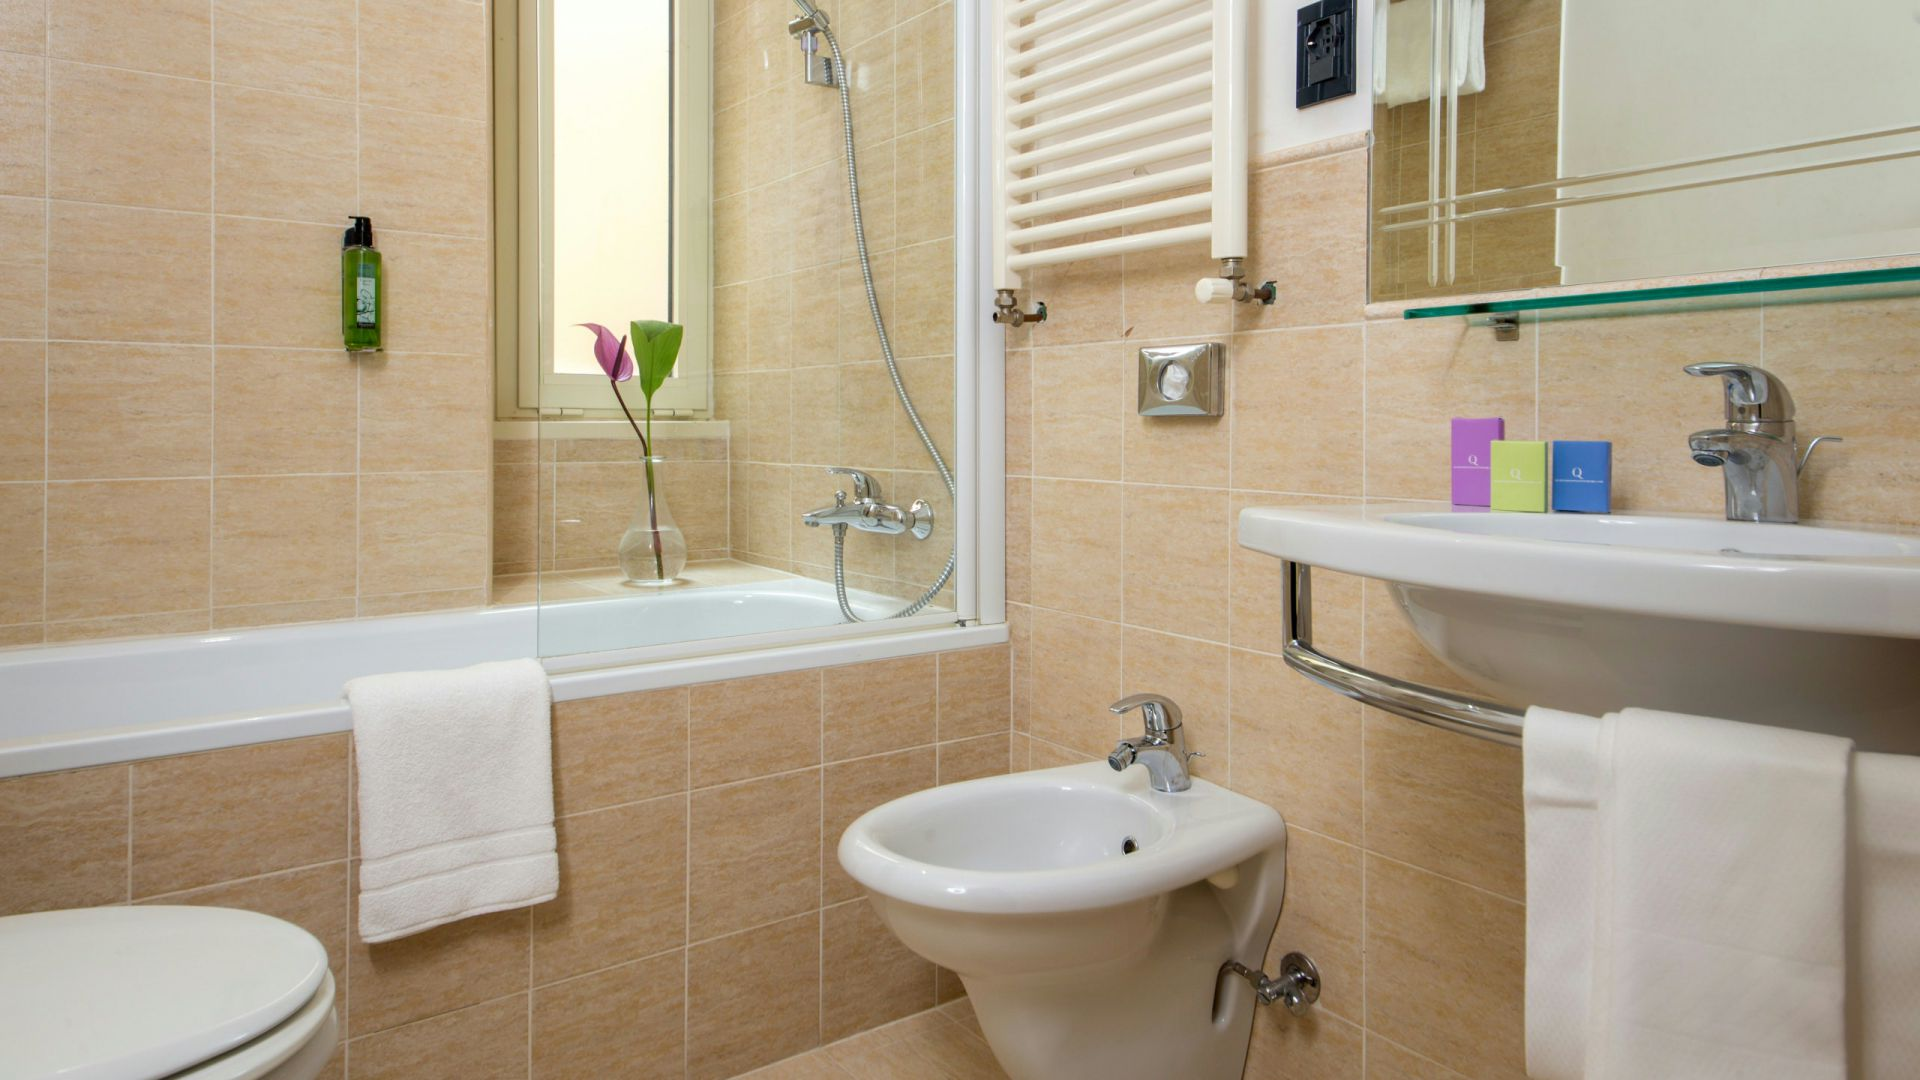 Foto-Hotel-Oxford-Roma-bagno-camera-1